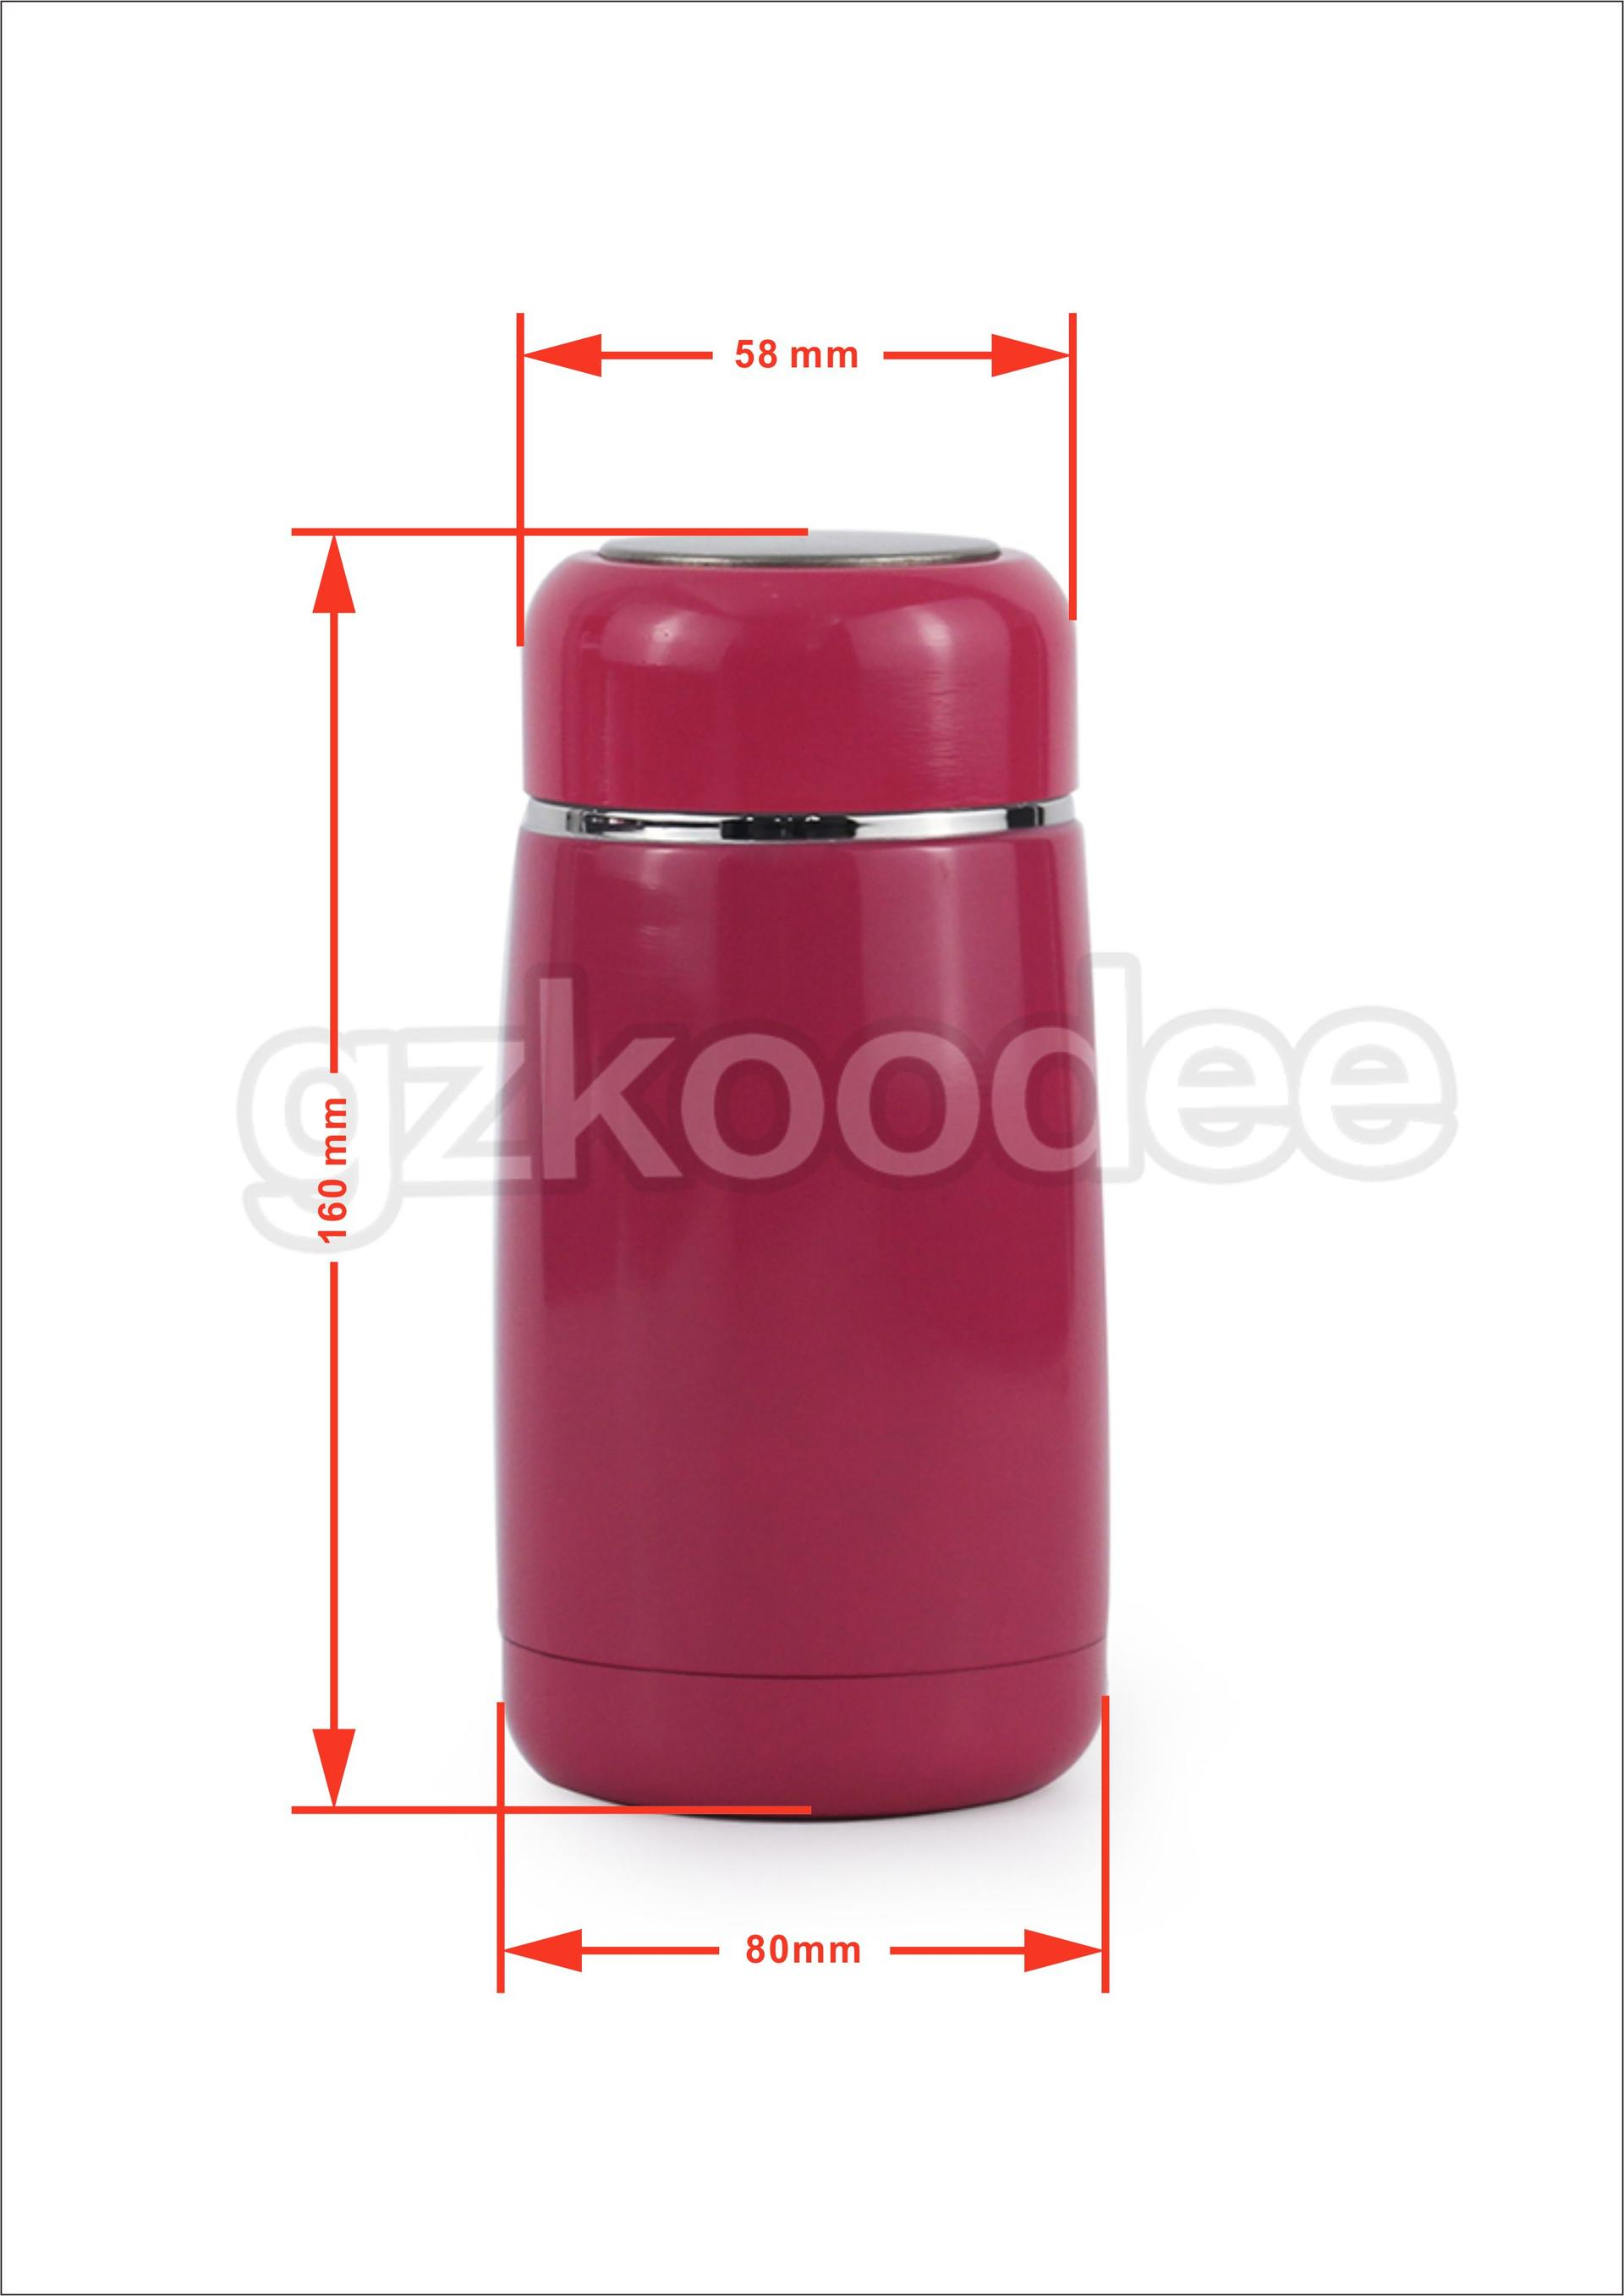 top brand thermos insulated bottle buy now for drinking Koodee